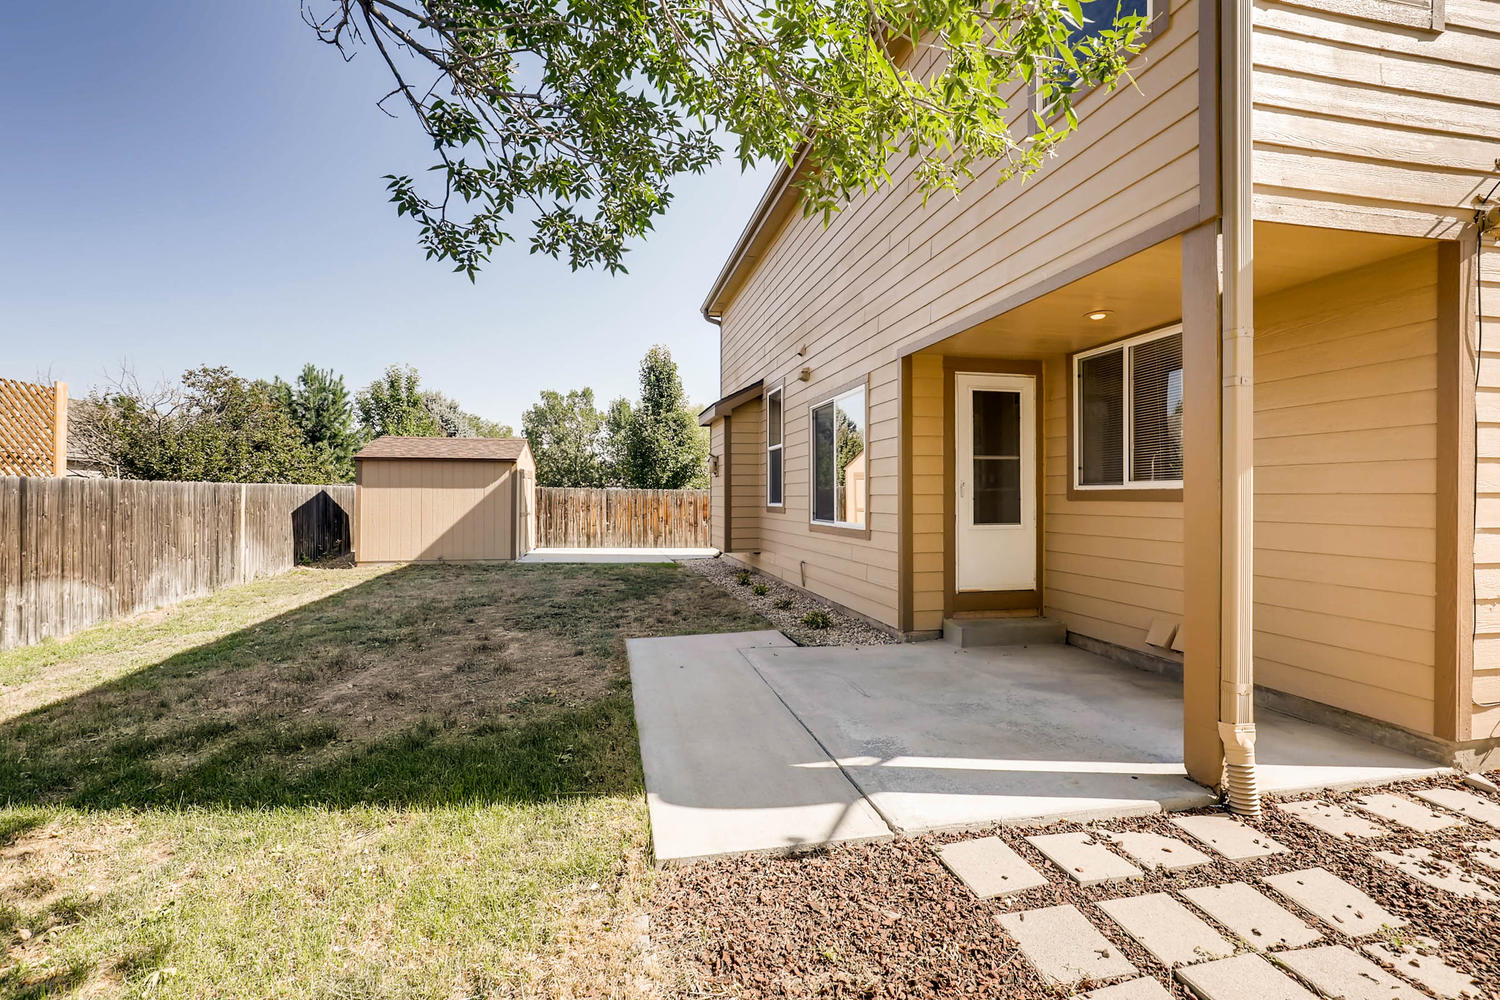 Photo of 1002 Timberline Court, Windsor, CO, 80550